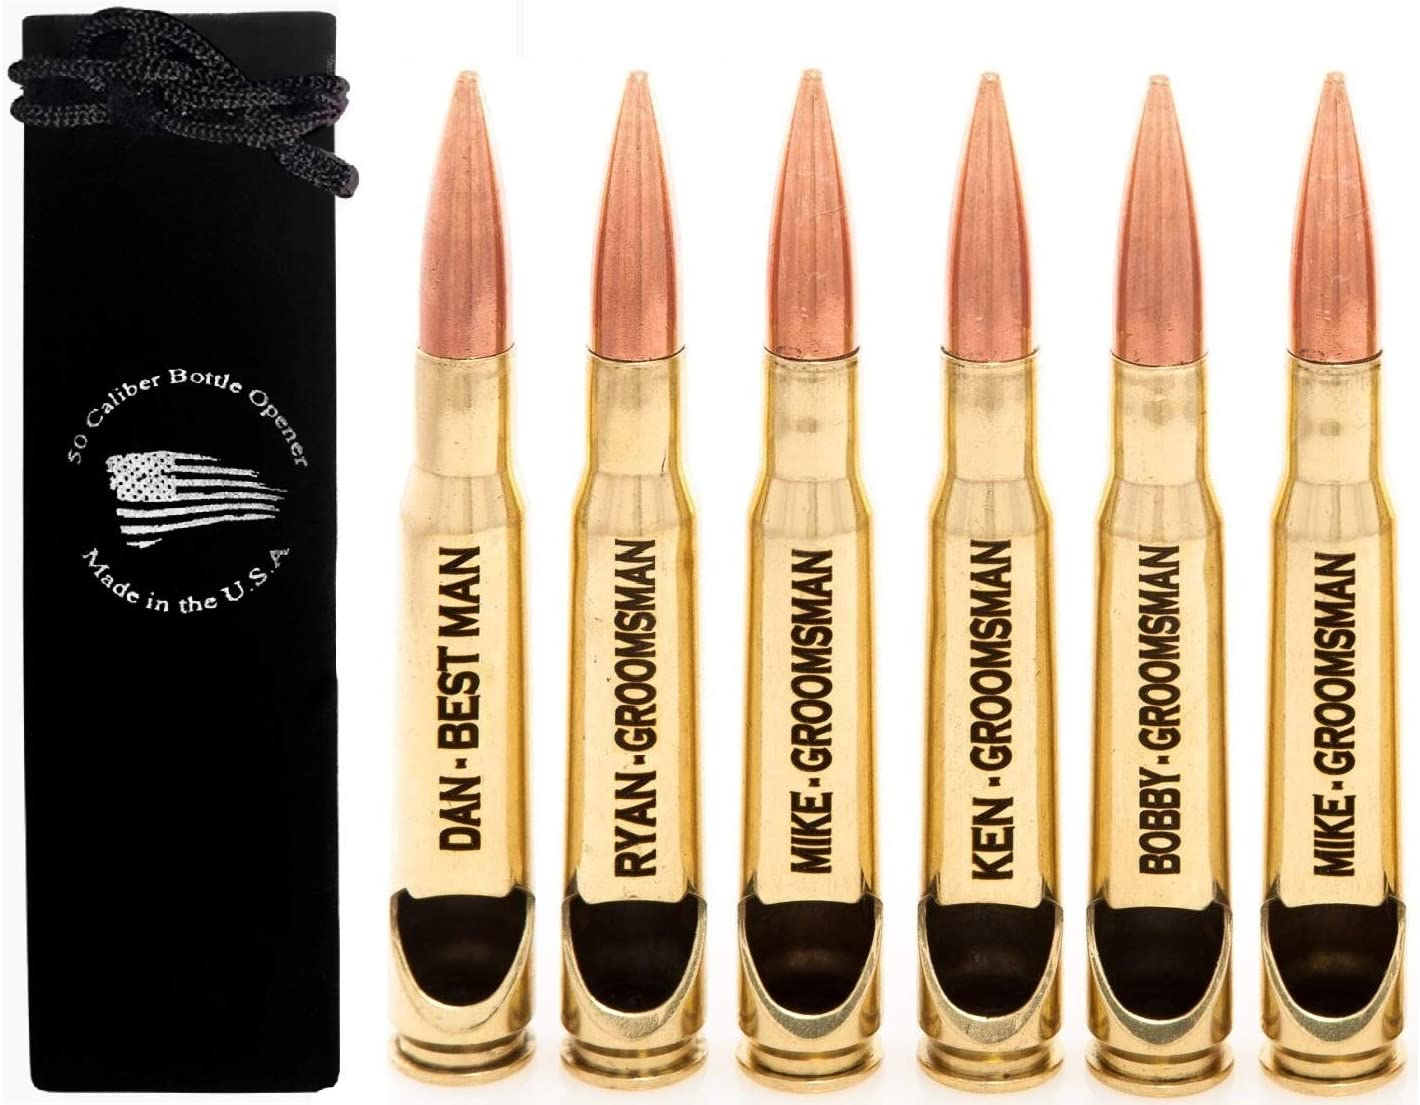 Personalized Max 53% OFF Engraved 50 Caliber BMG Opener Bullet Many popular brands Real - Bottle